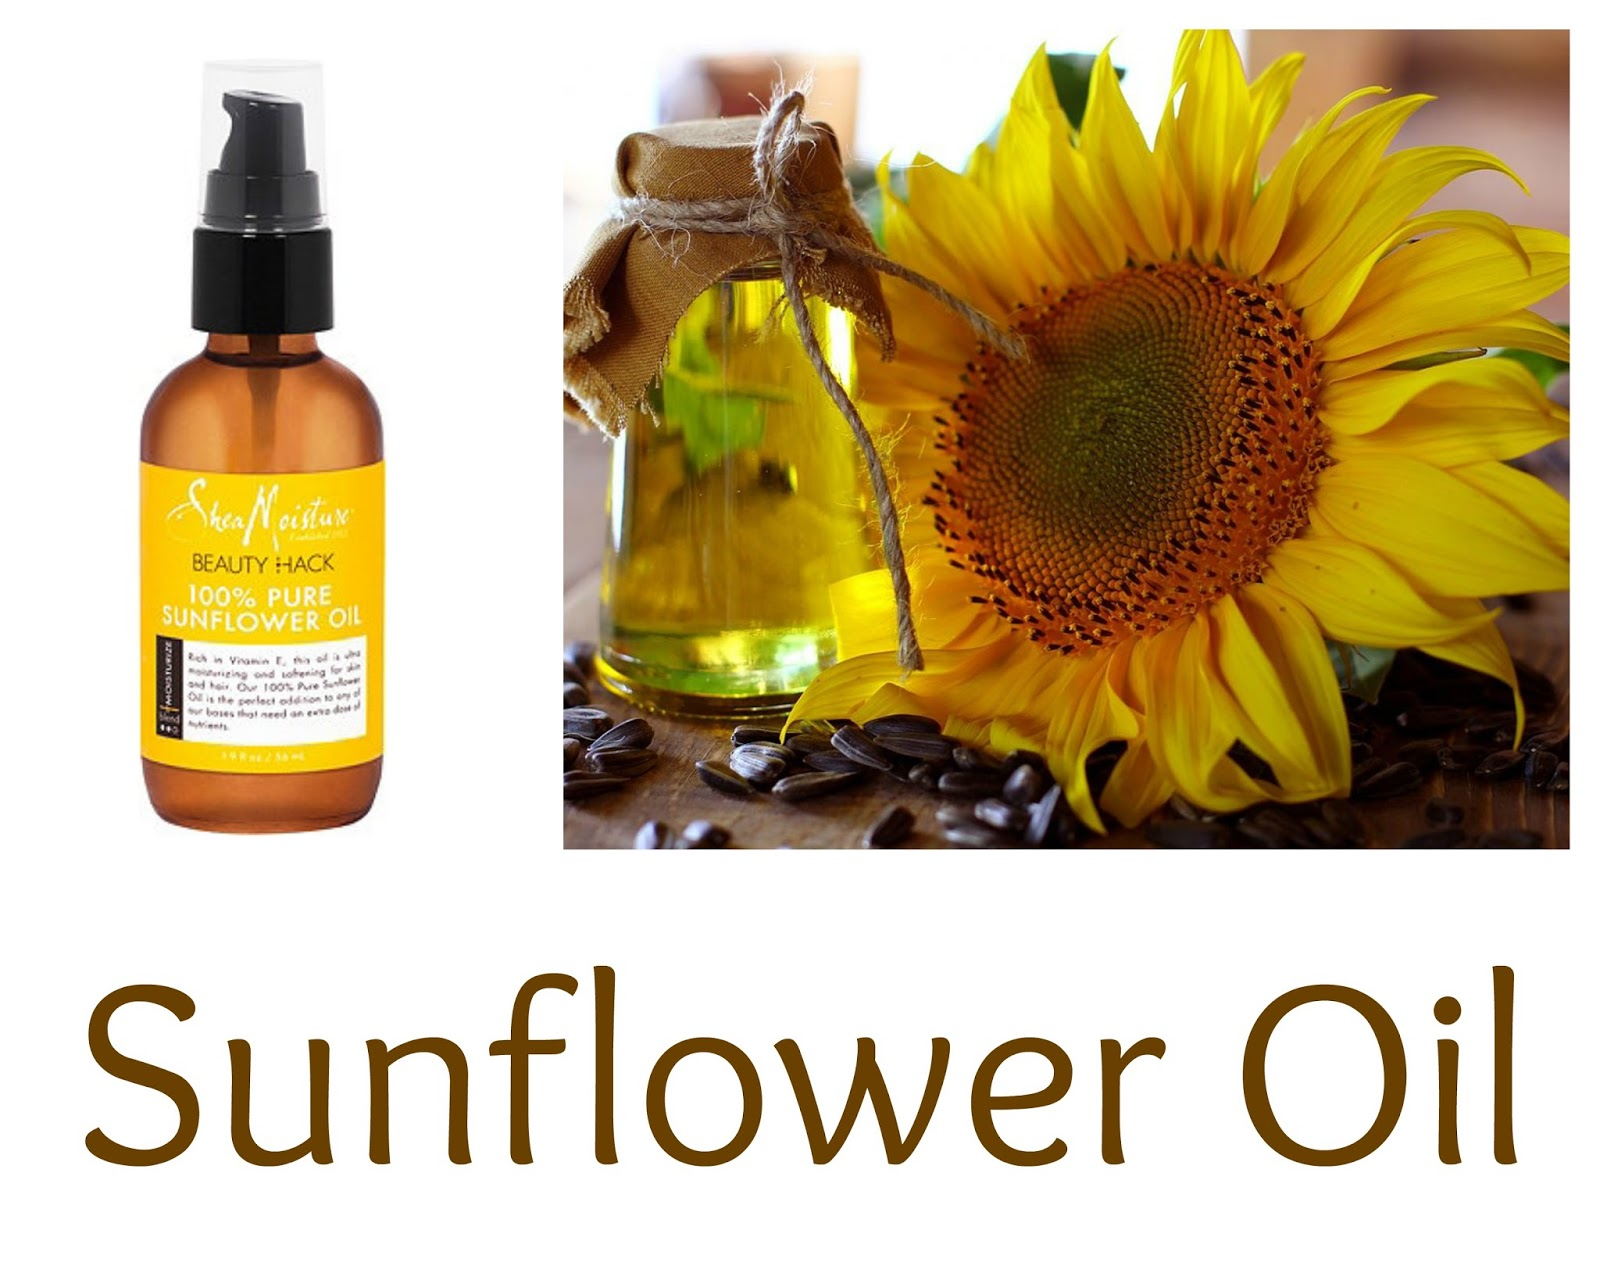 Click here to buy a great oil for low porosity hair, SheaMoisture Beauty Hack 100% Pure Sunflower Oil